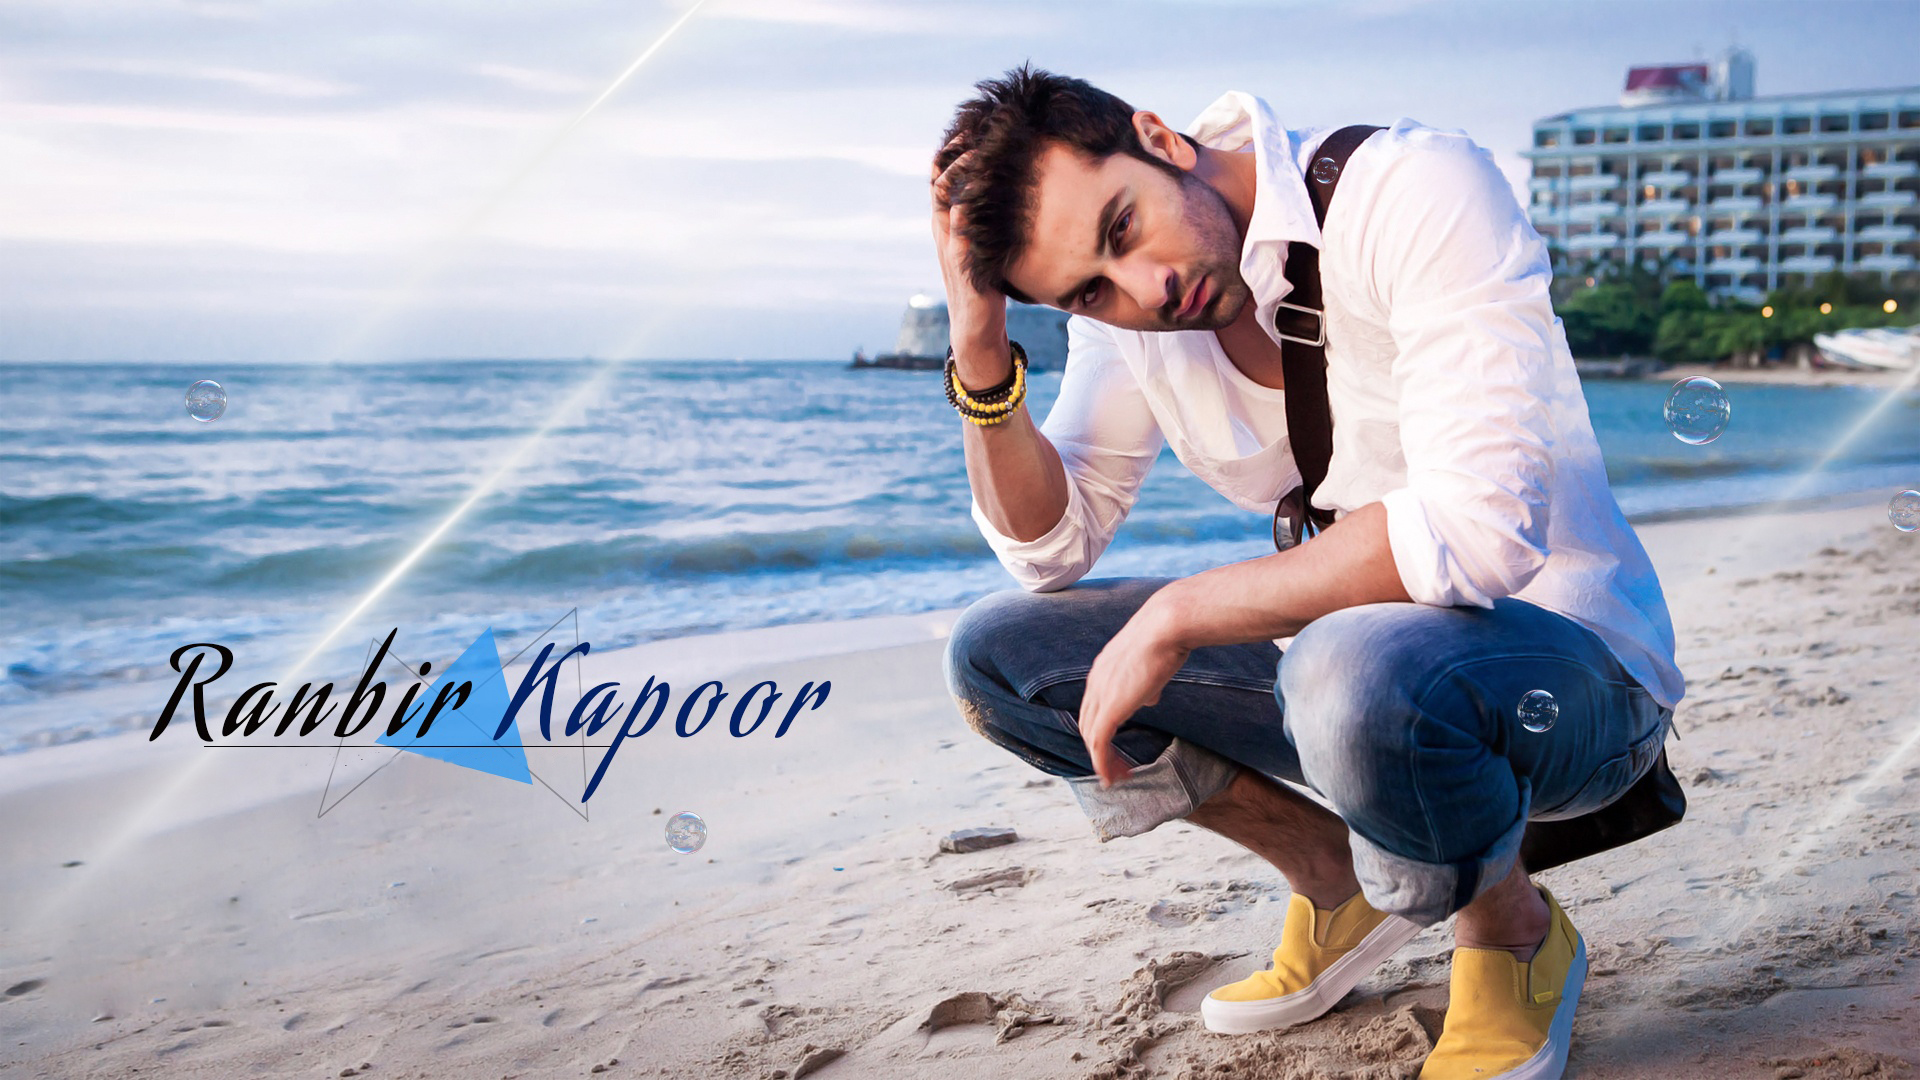 Images of Ranbir Kapoor